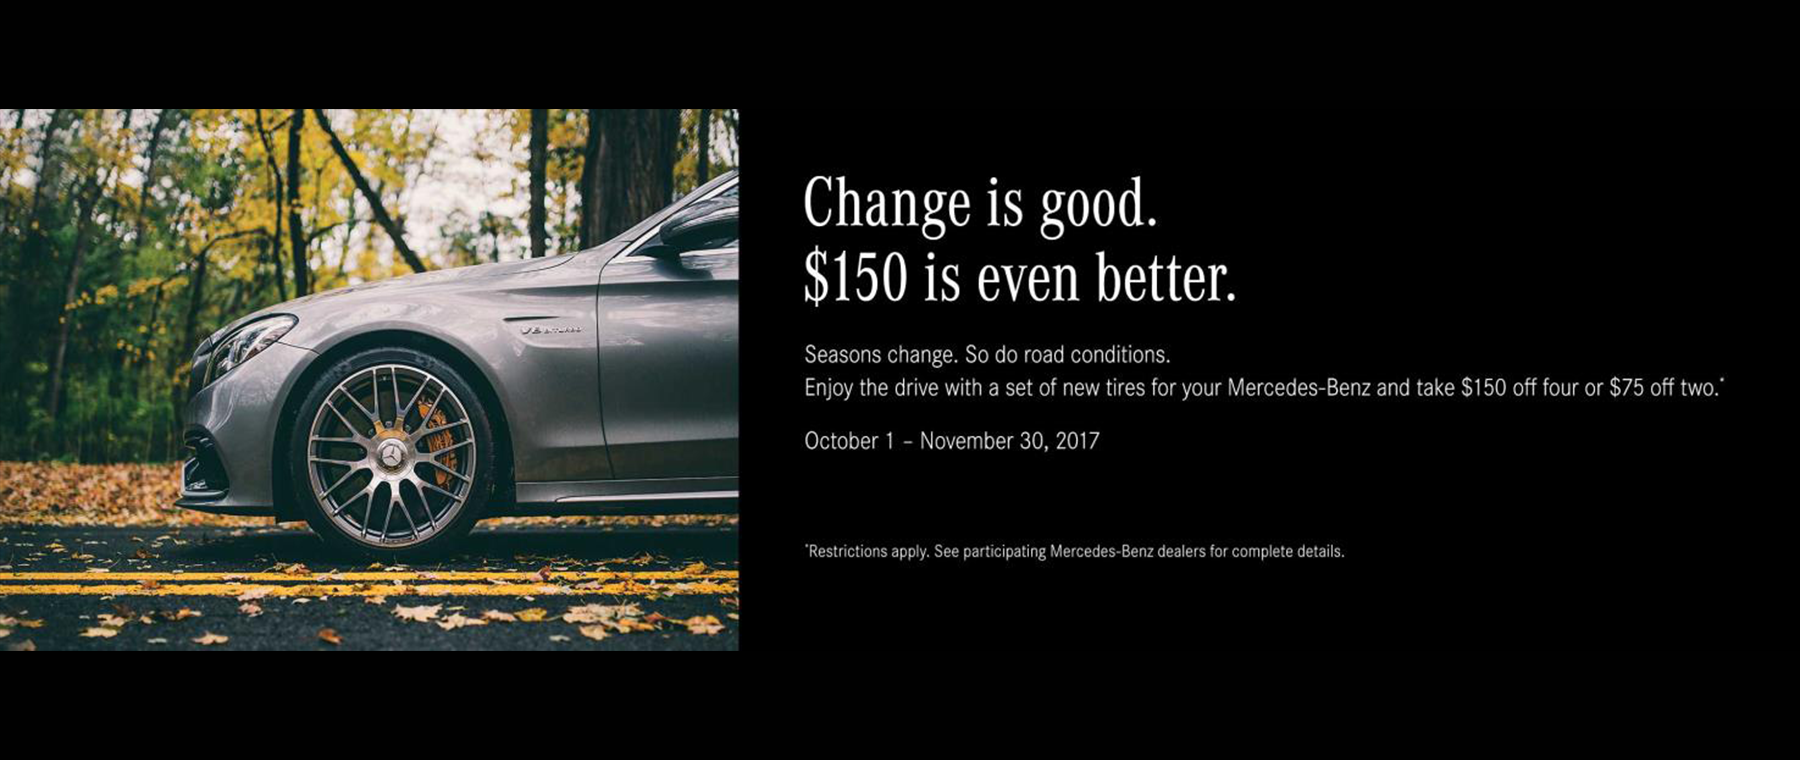 Mercedes benz of richmond va new used cars for Mercedes benz richmond midlothian va